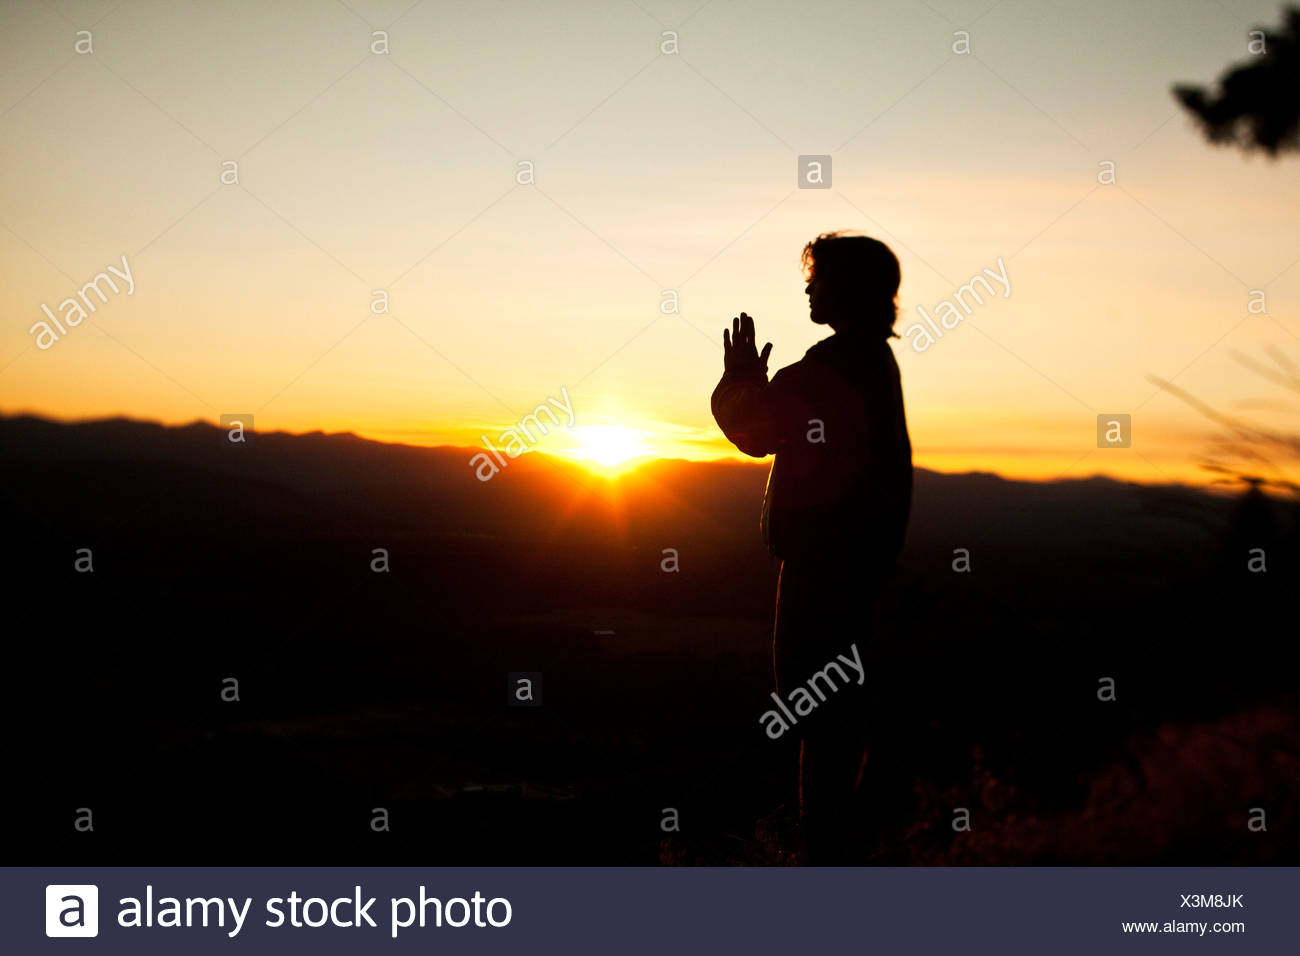 A young man praying as the sun rises over a valley in Idaho. - Stock Image